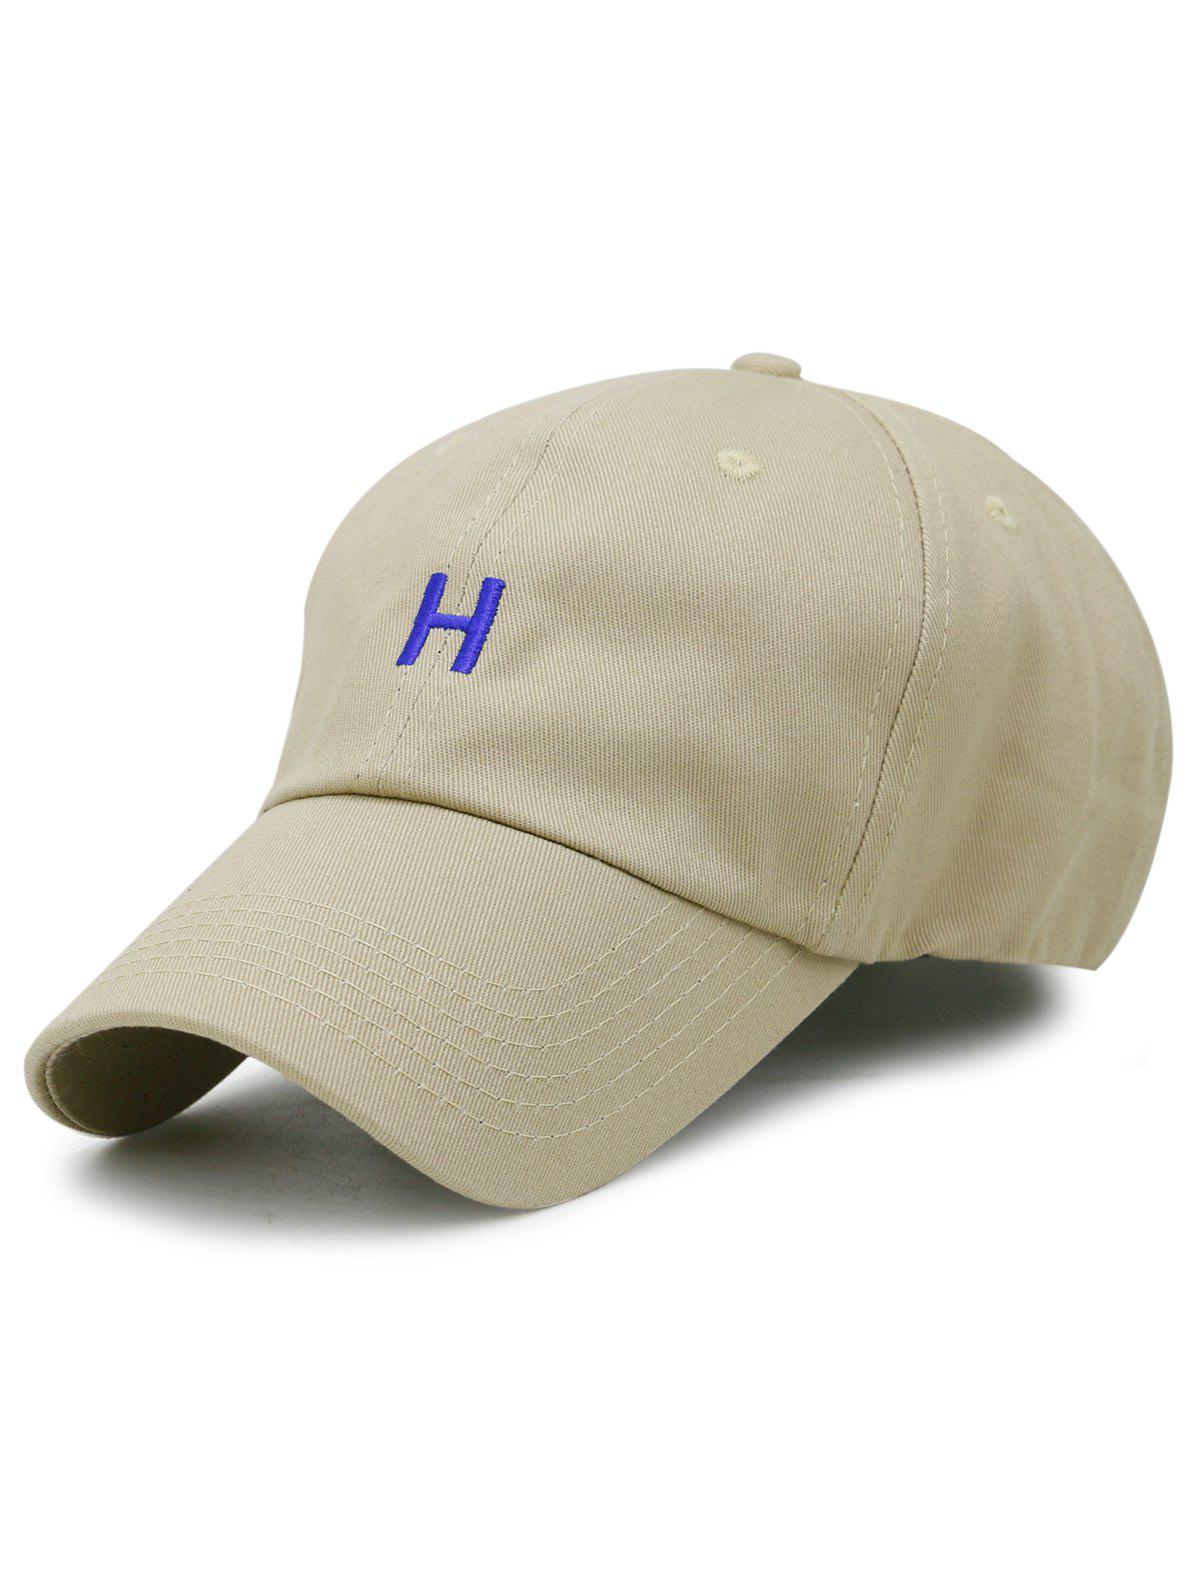 Simple H Embroidery Adjustable Baseball Cap - KHAKI